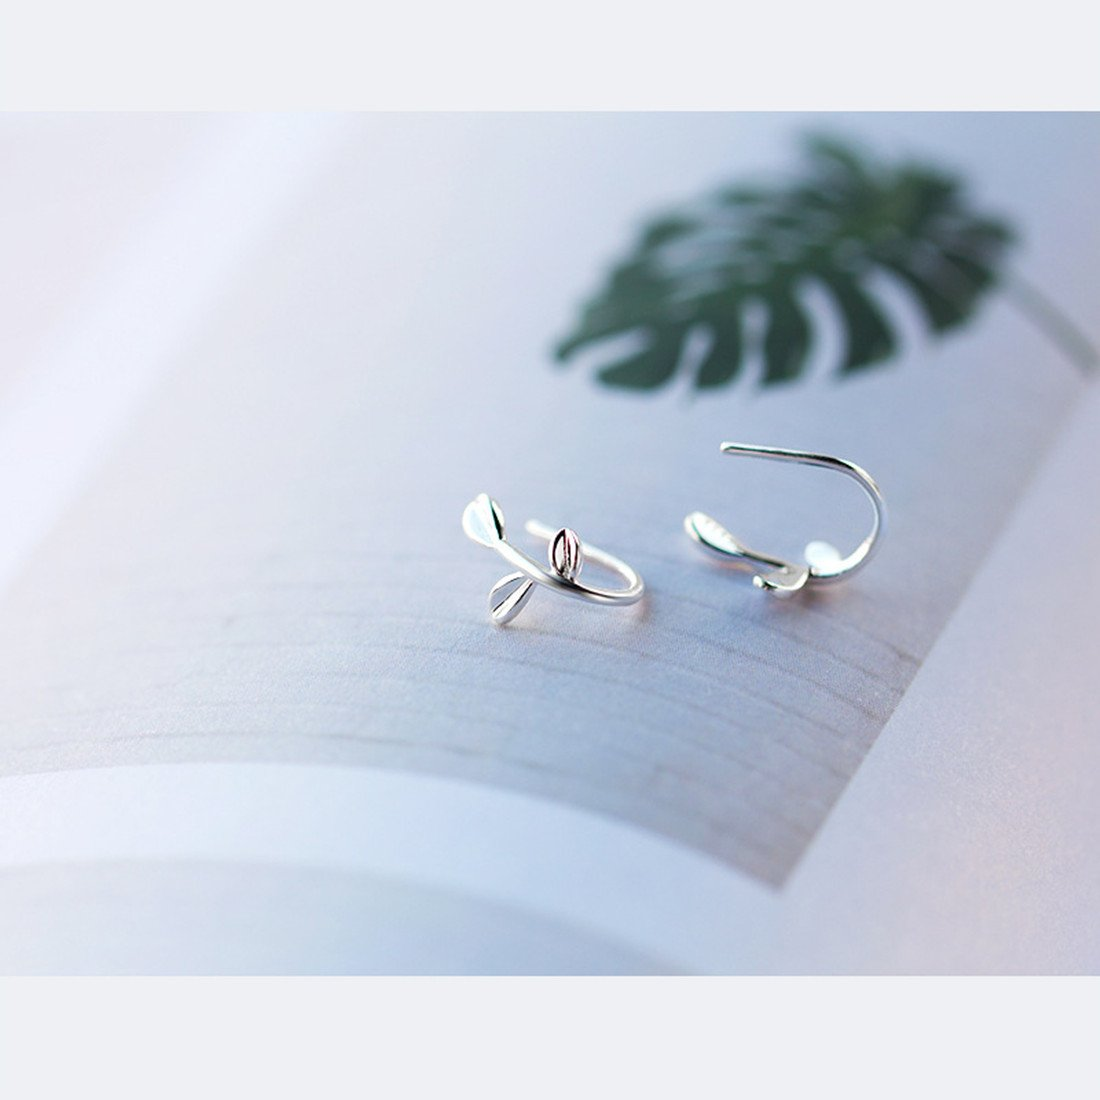 Leaf Earrings Sterling Silver Leaf Hook Earrings Olive Leaf Ear Clip for Women by DOMILINA (Image #3)